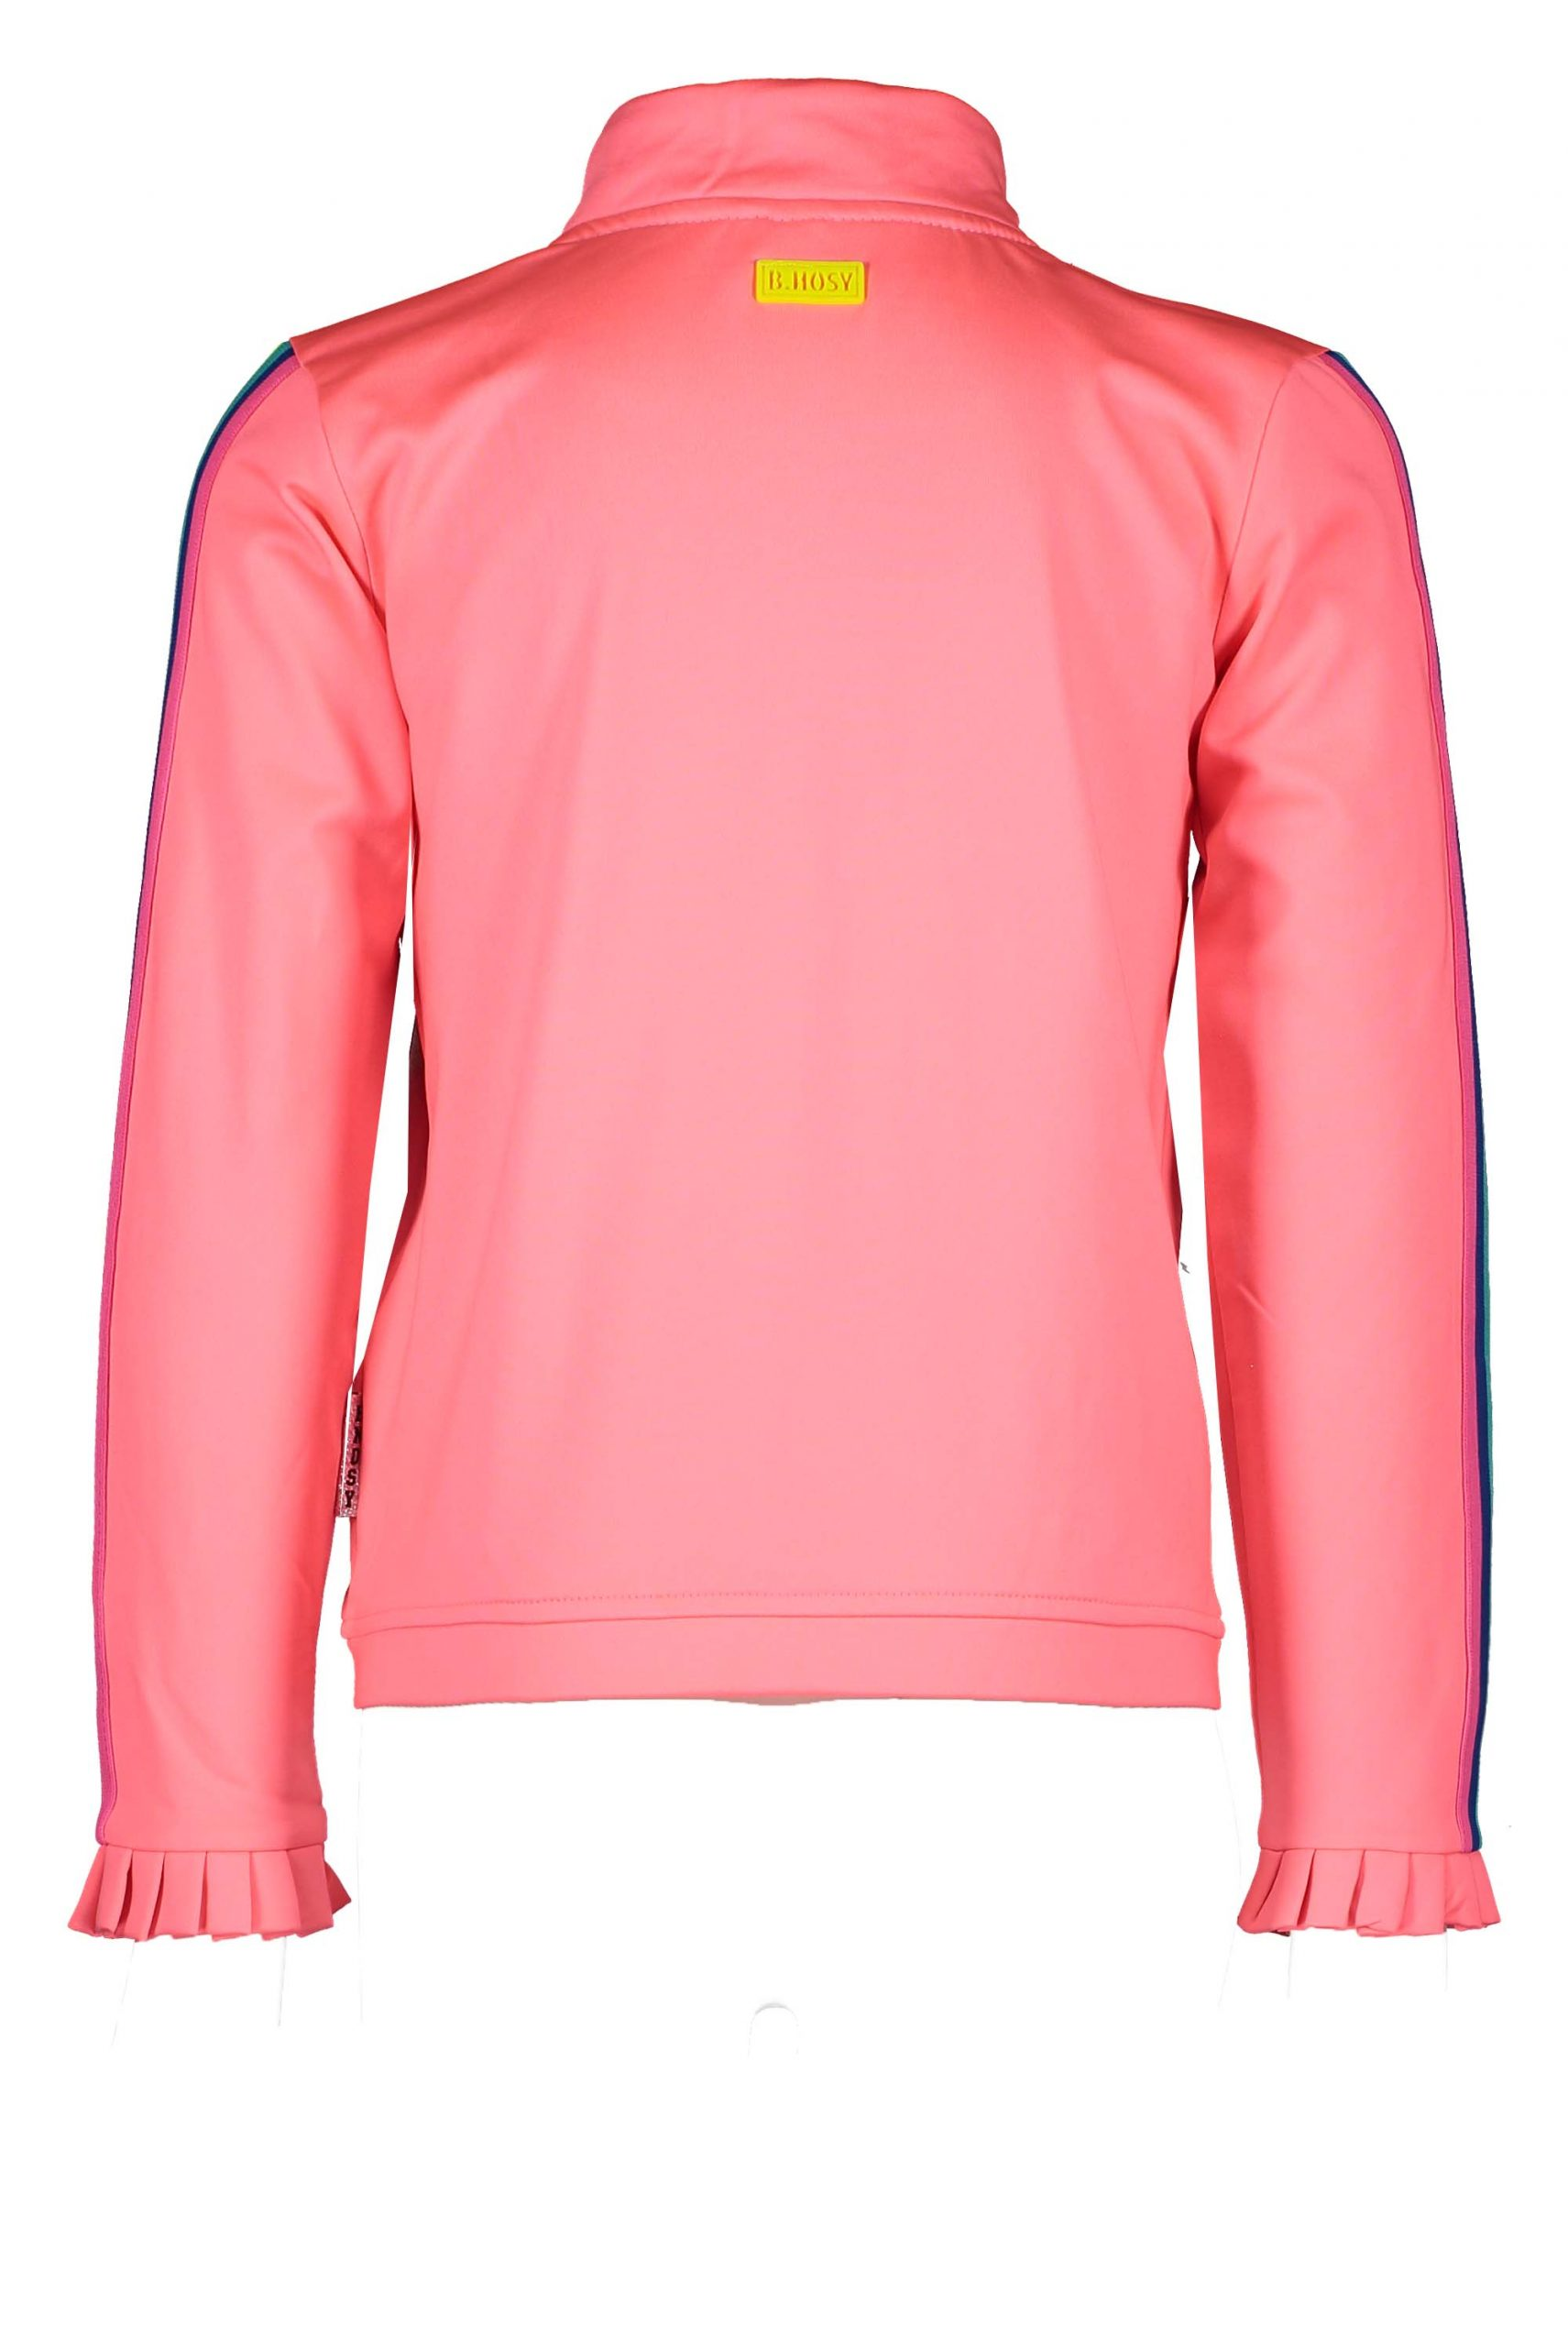 B-Nosy Sweat top 5361